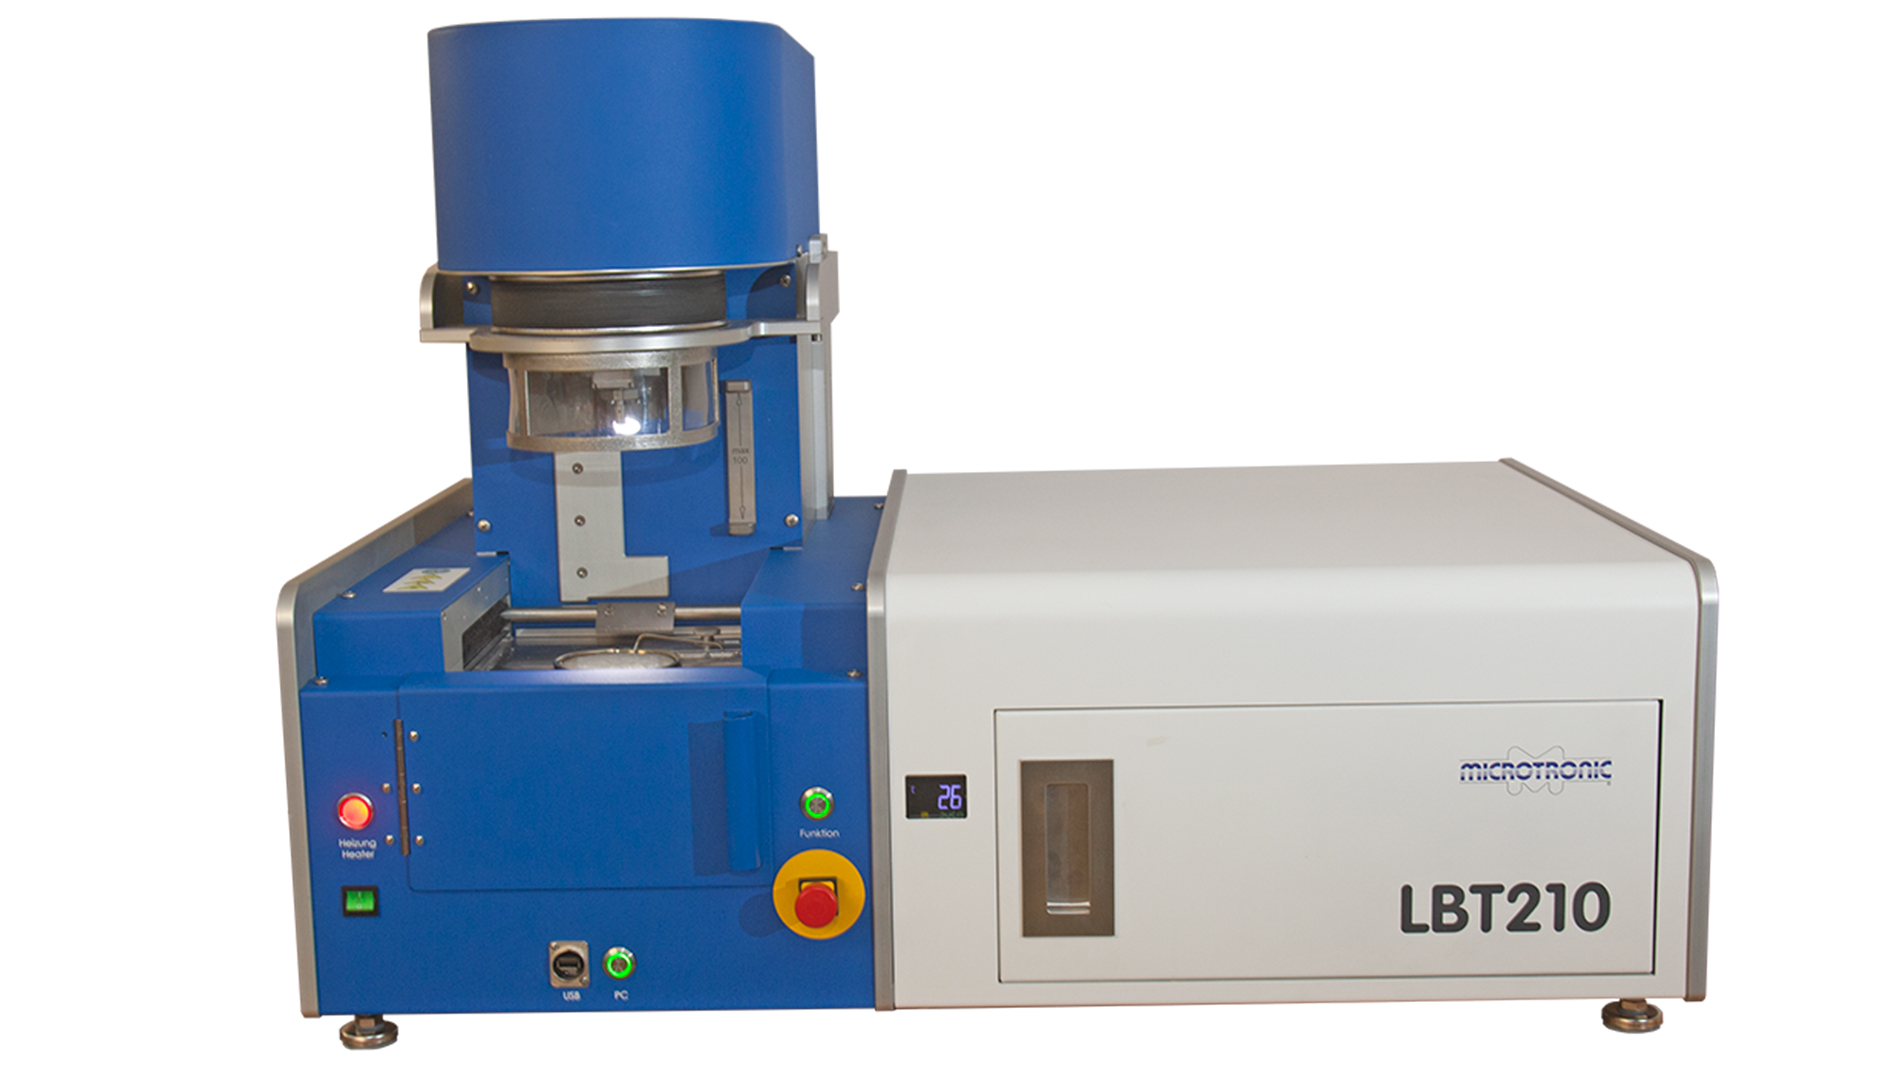 Picture 1: LBT 210 for efficient and safe solderability tests (Picture: Microtronic M. V. GmbH)